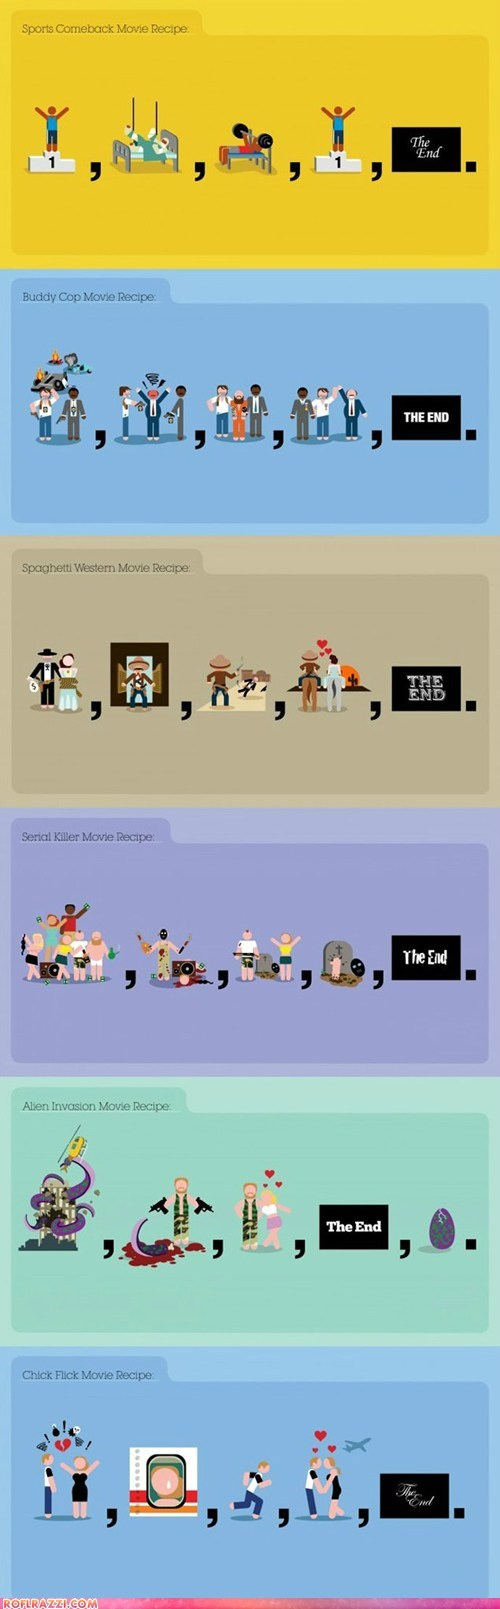 film funny hbo infographic Movie recipe - 6491525120